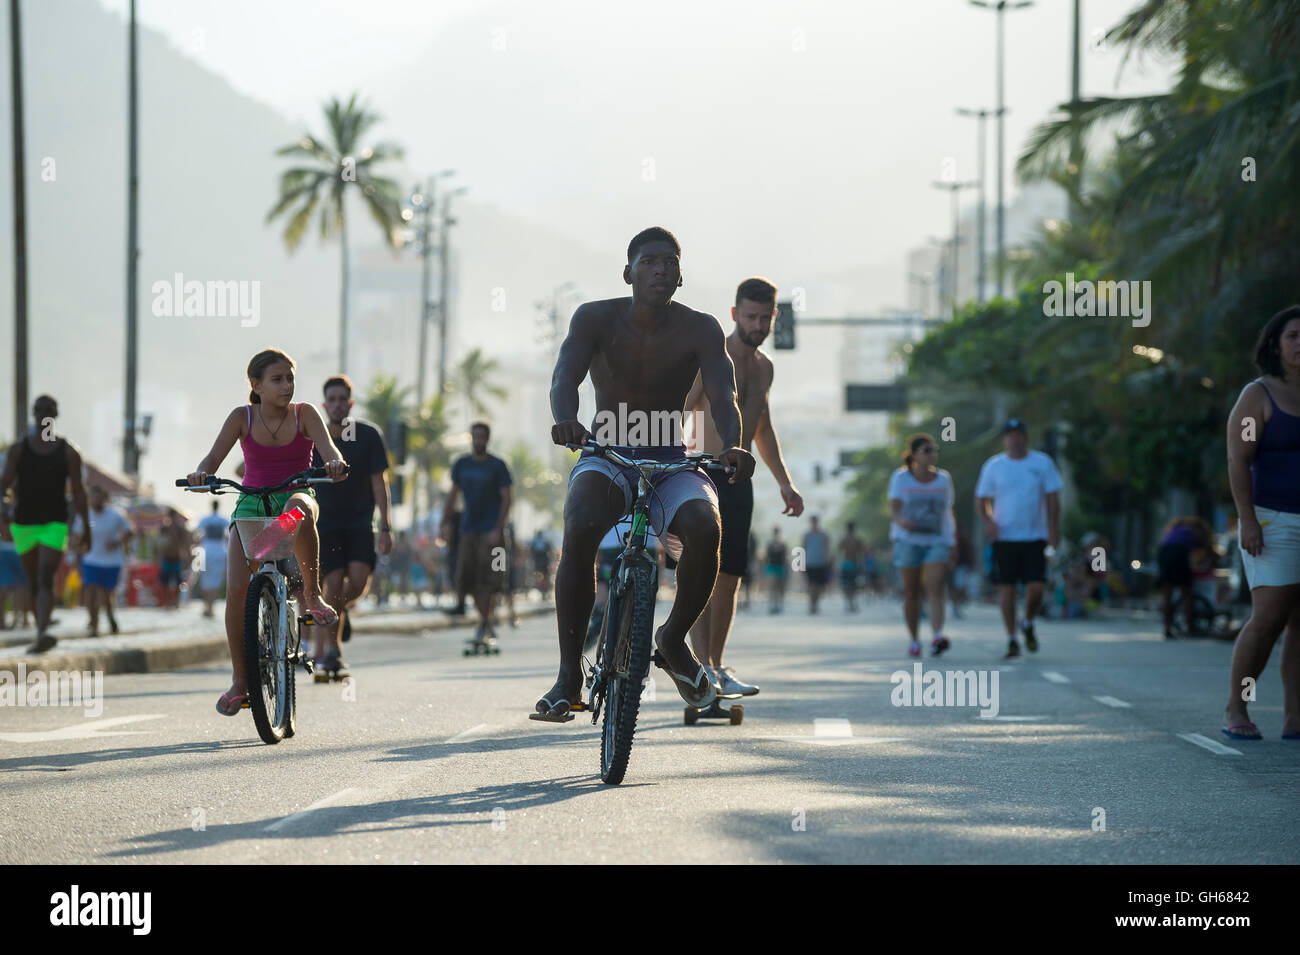 RIO DE JANEIRO - MARCH 6, 2016: Pedestrians, cyclists, joggers, and skaters take advantage of a car-free Sunday - Stock Image